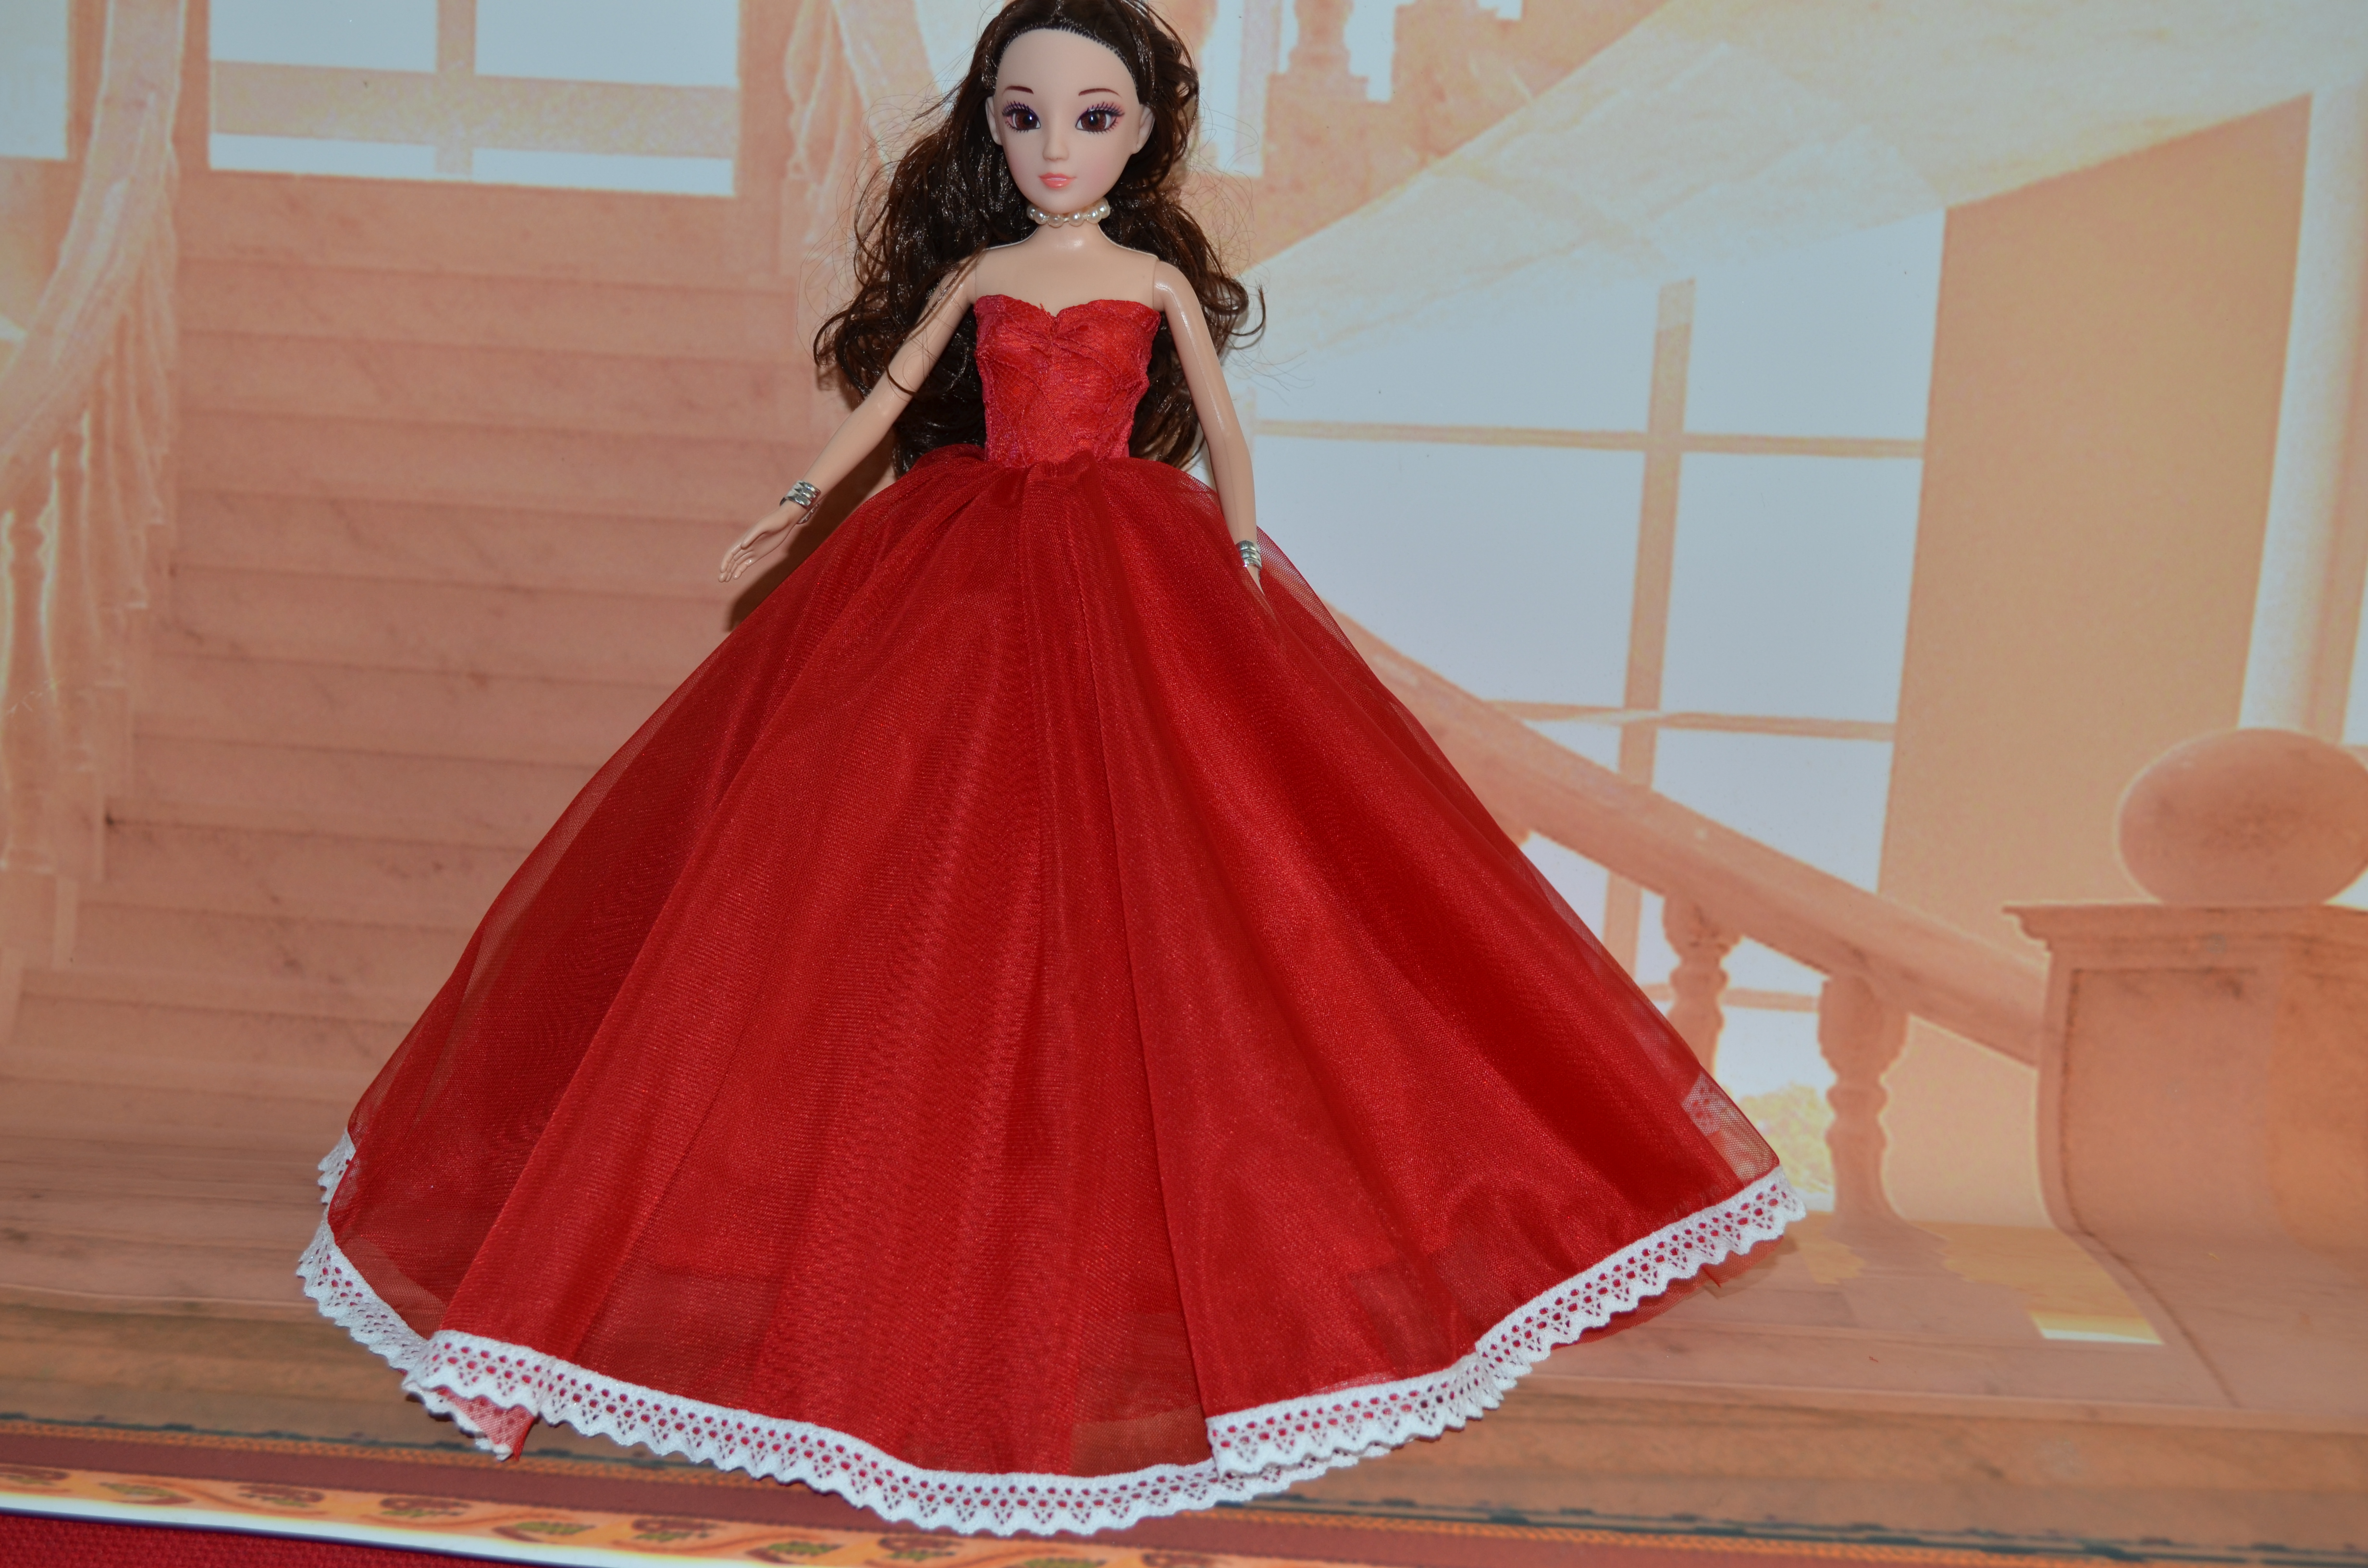 fashion for barbie doll clothes red Wedding gown 30cm doll